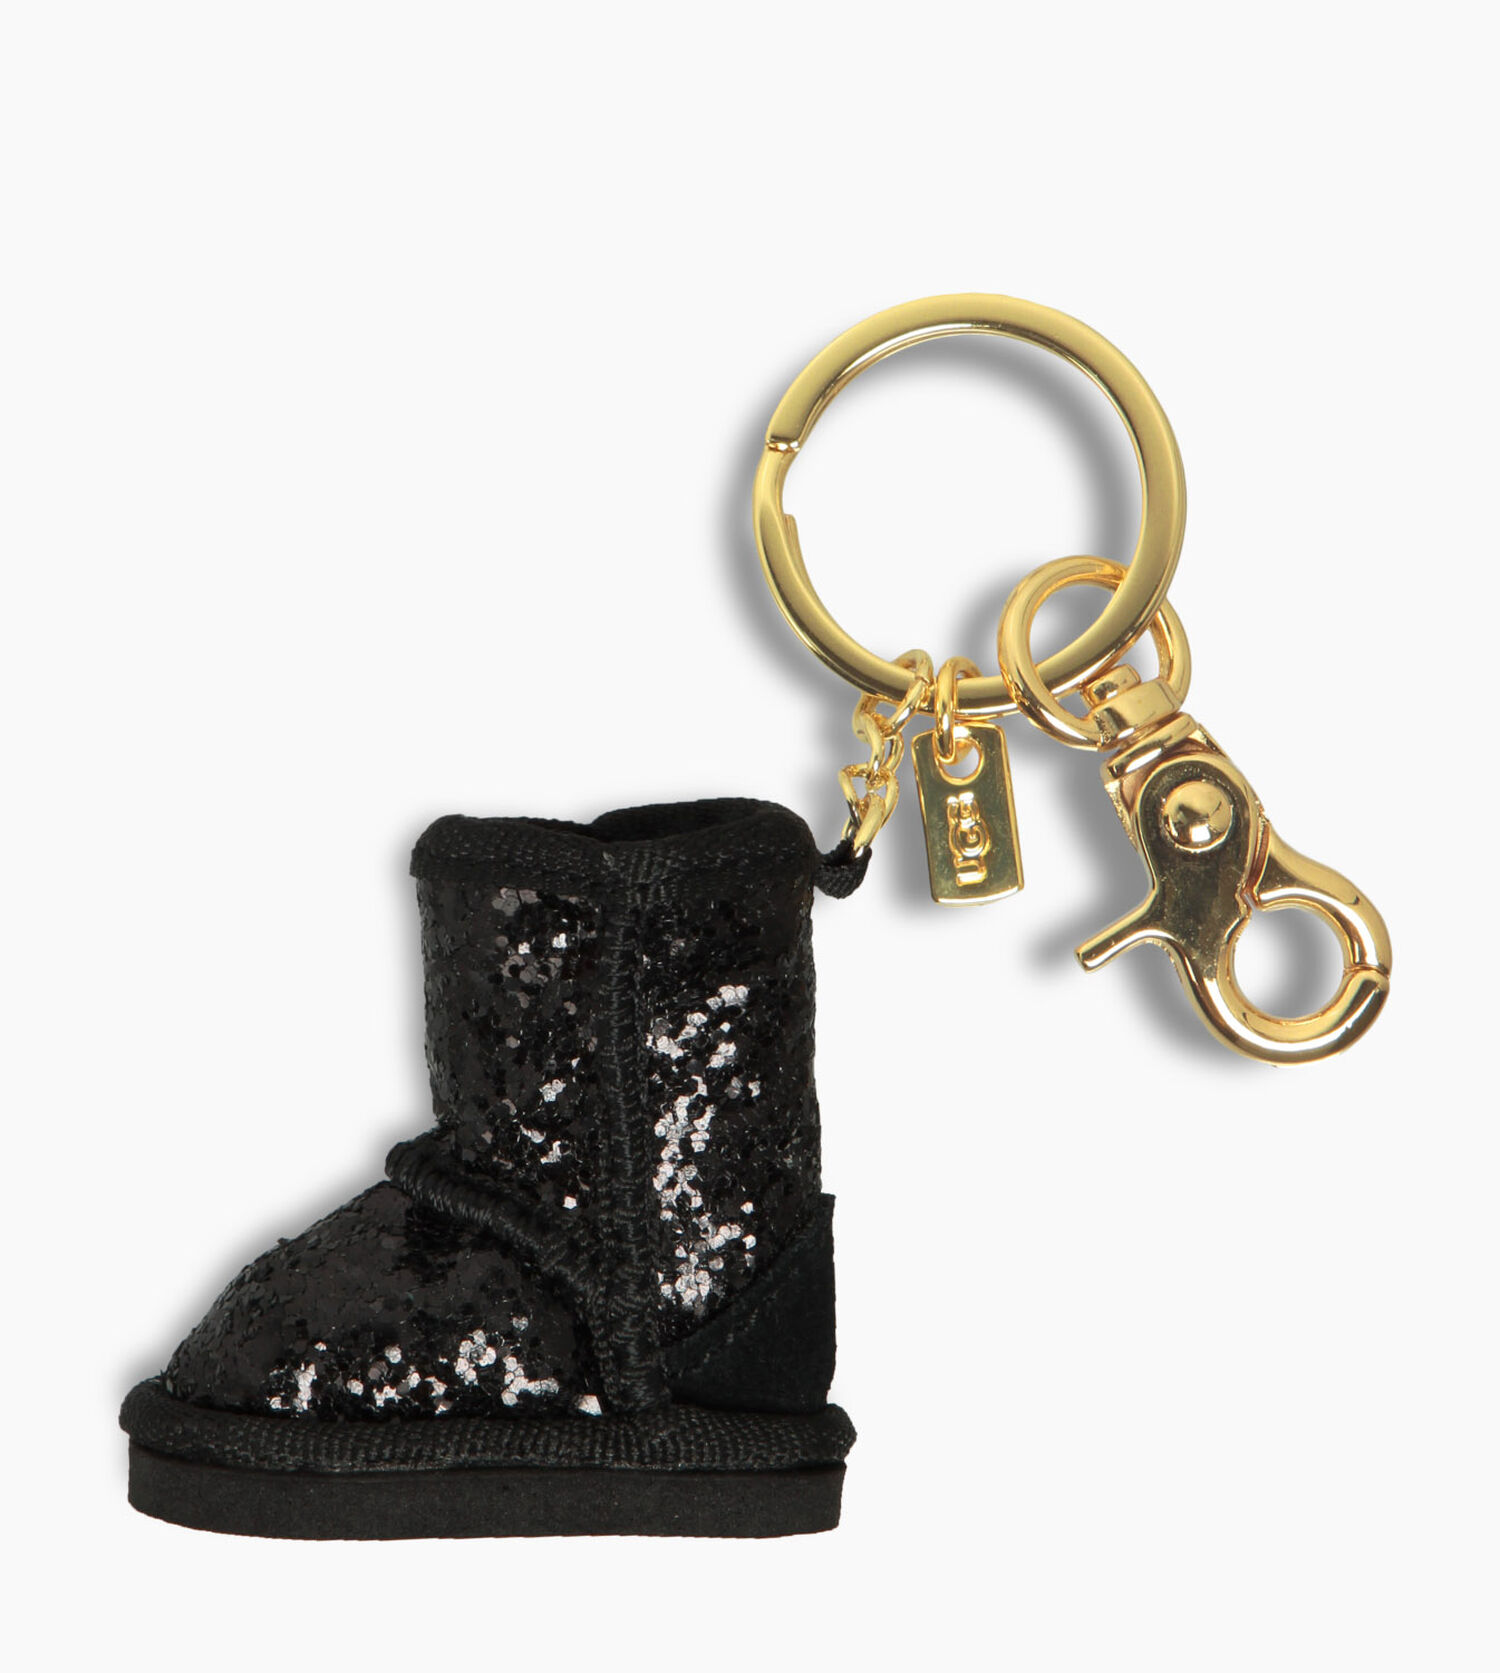 Zoom Glitter Boot Charm - Image 1 of 1 ad97c95760